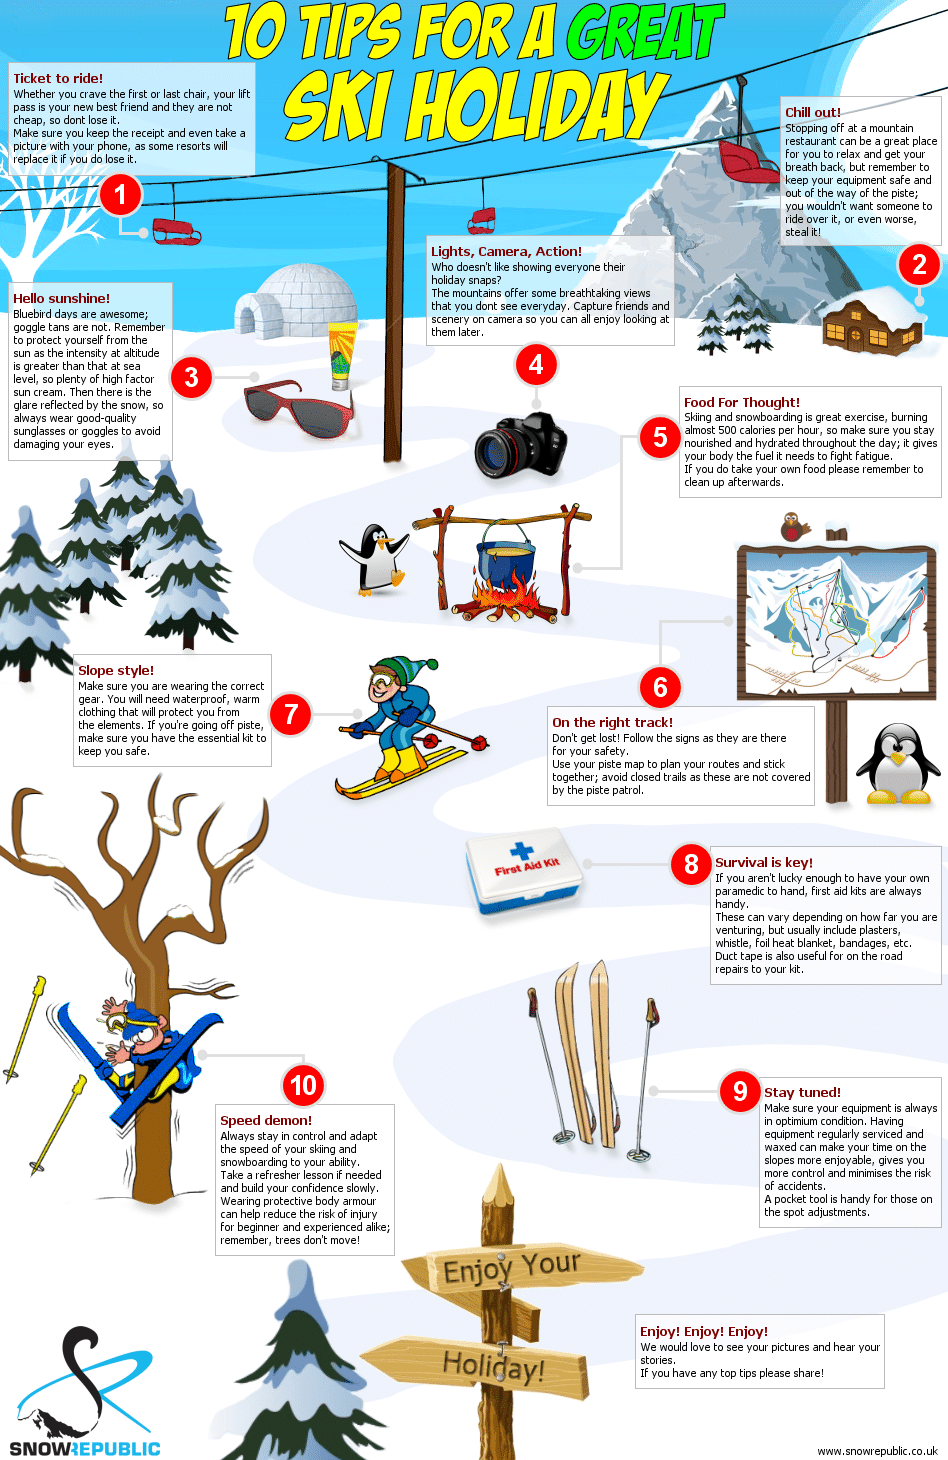 10_tips_for_a_great_ski_holiday